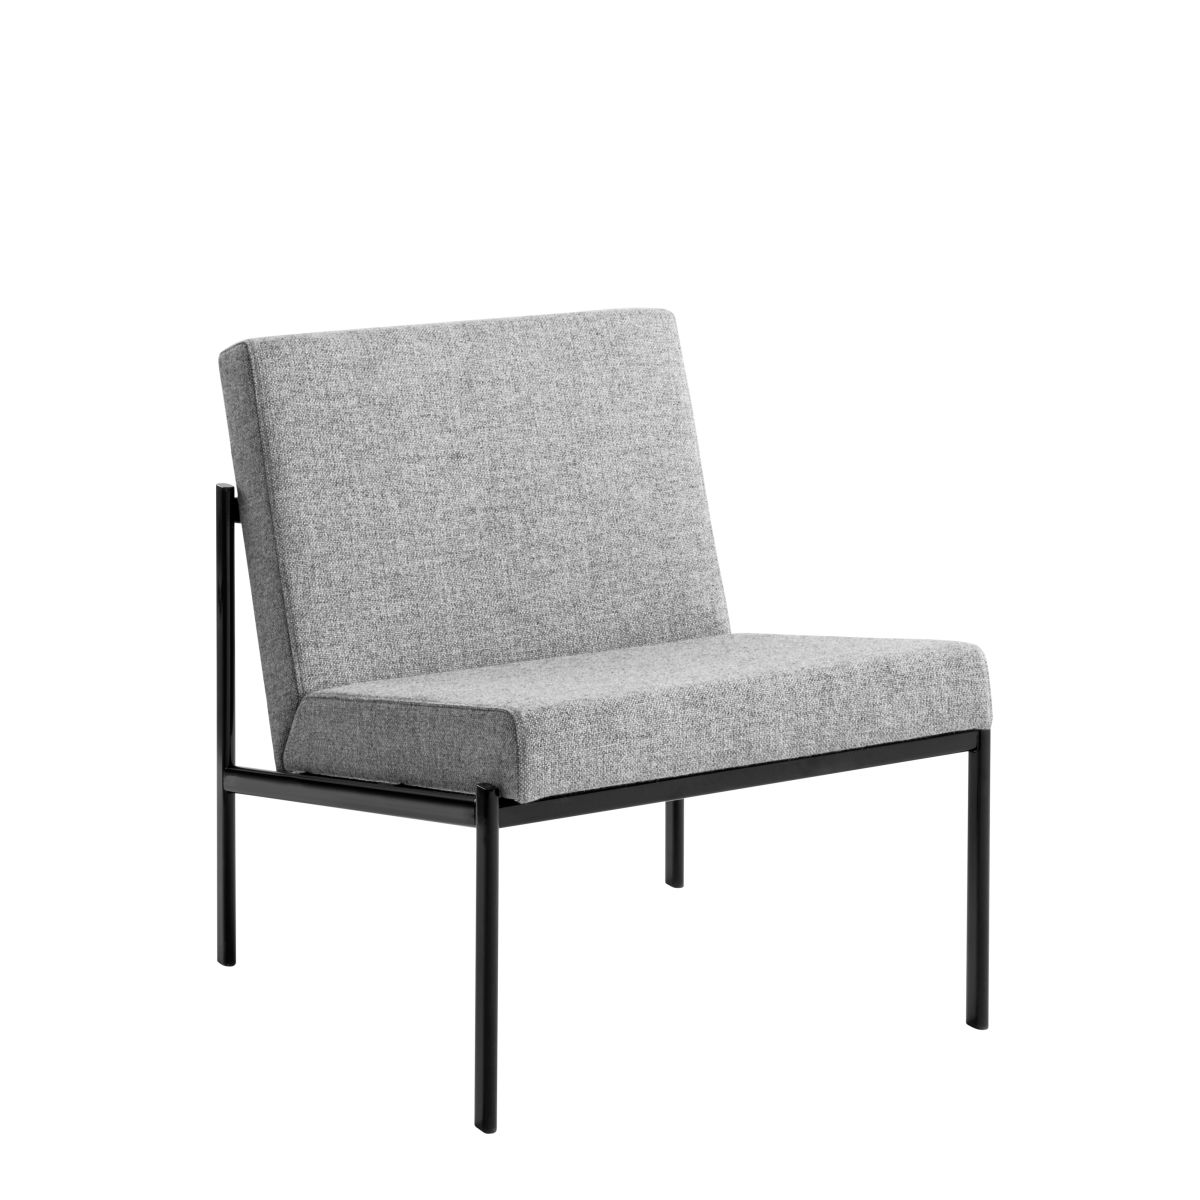 Kiki-Lounge-Chair-Grey-Upholstery